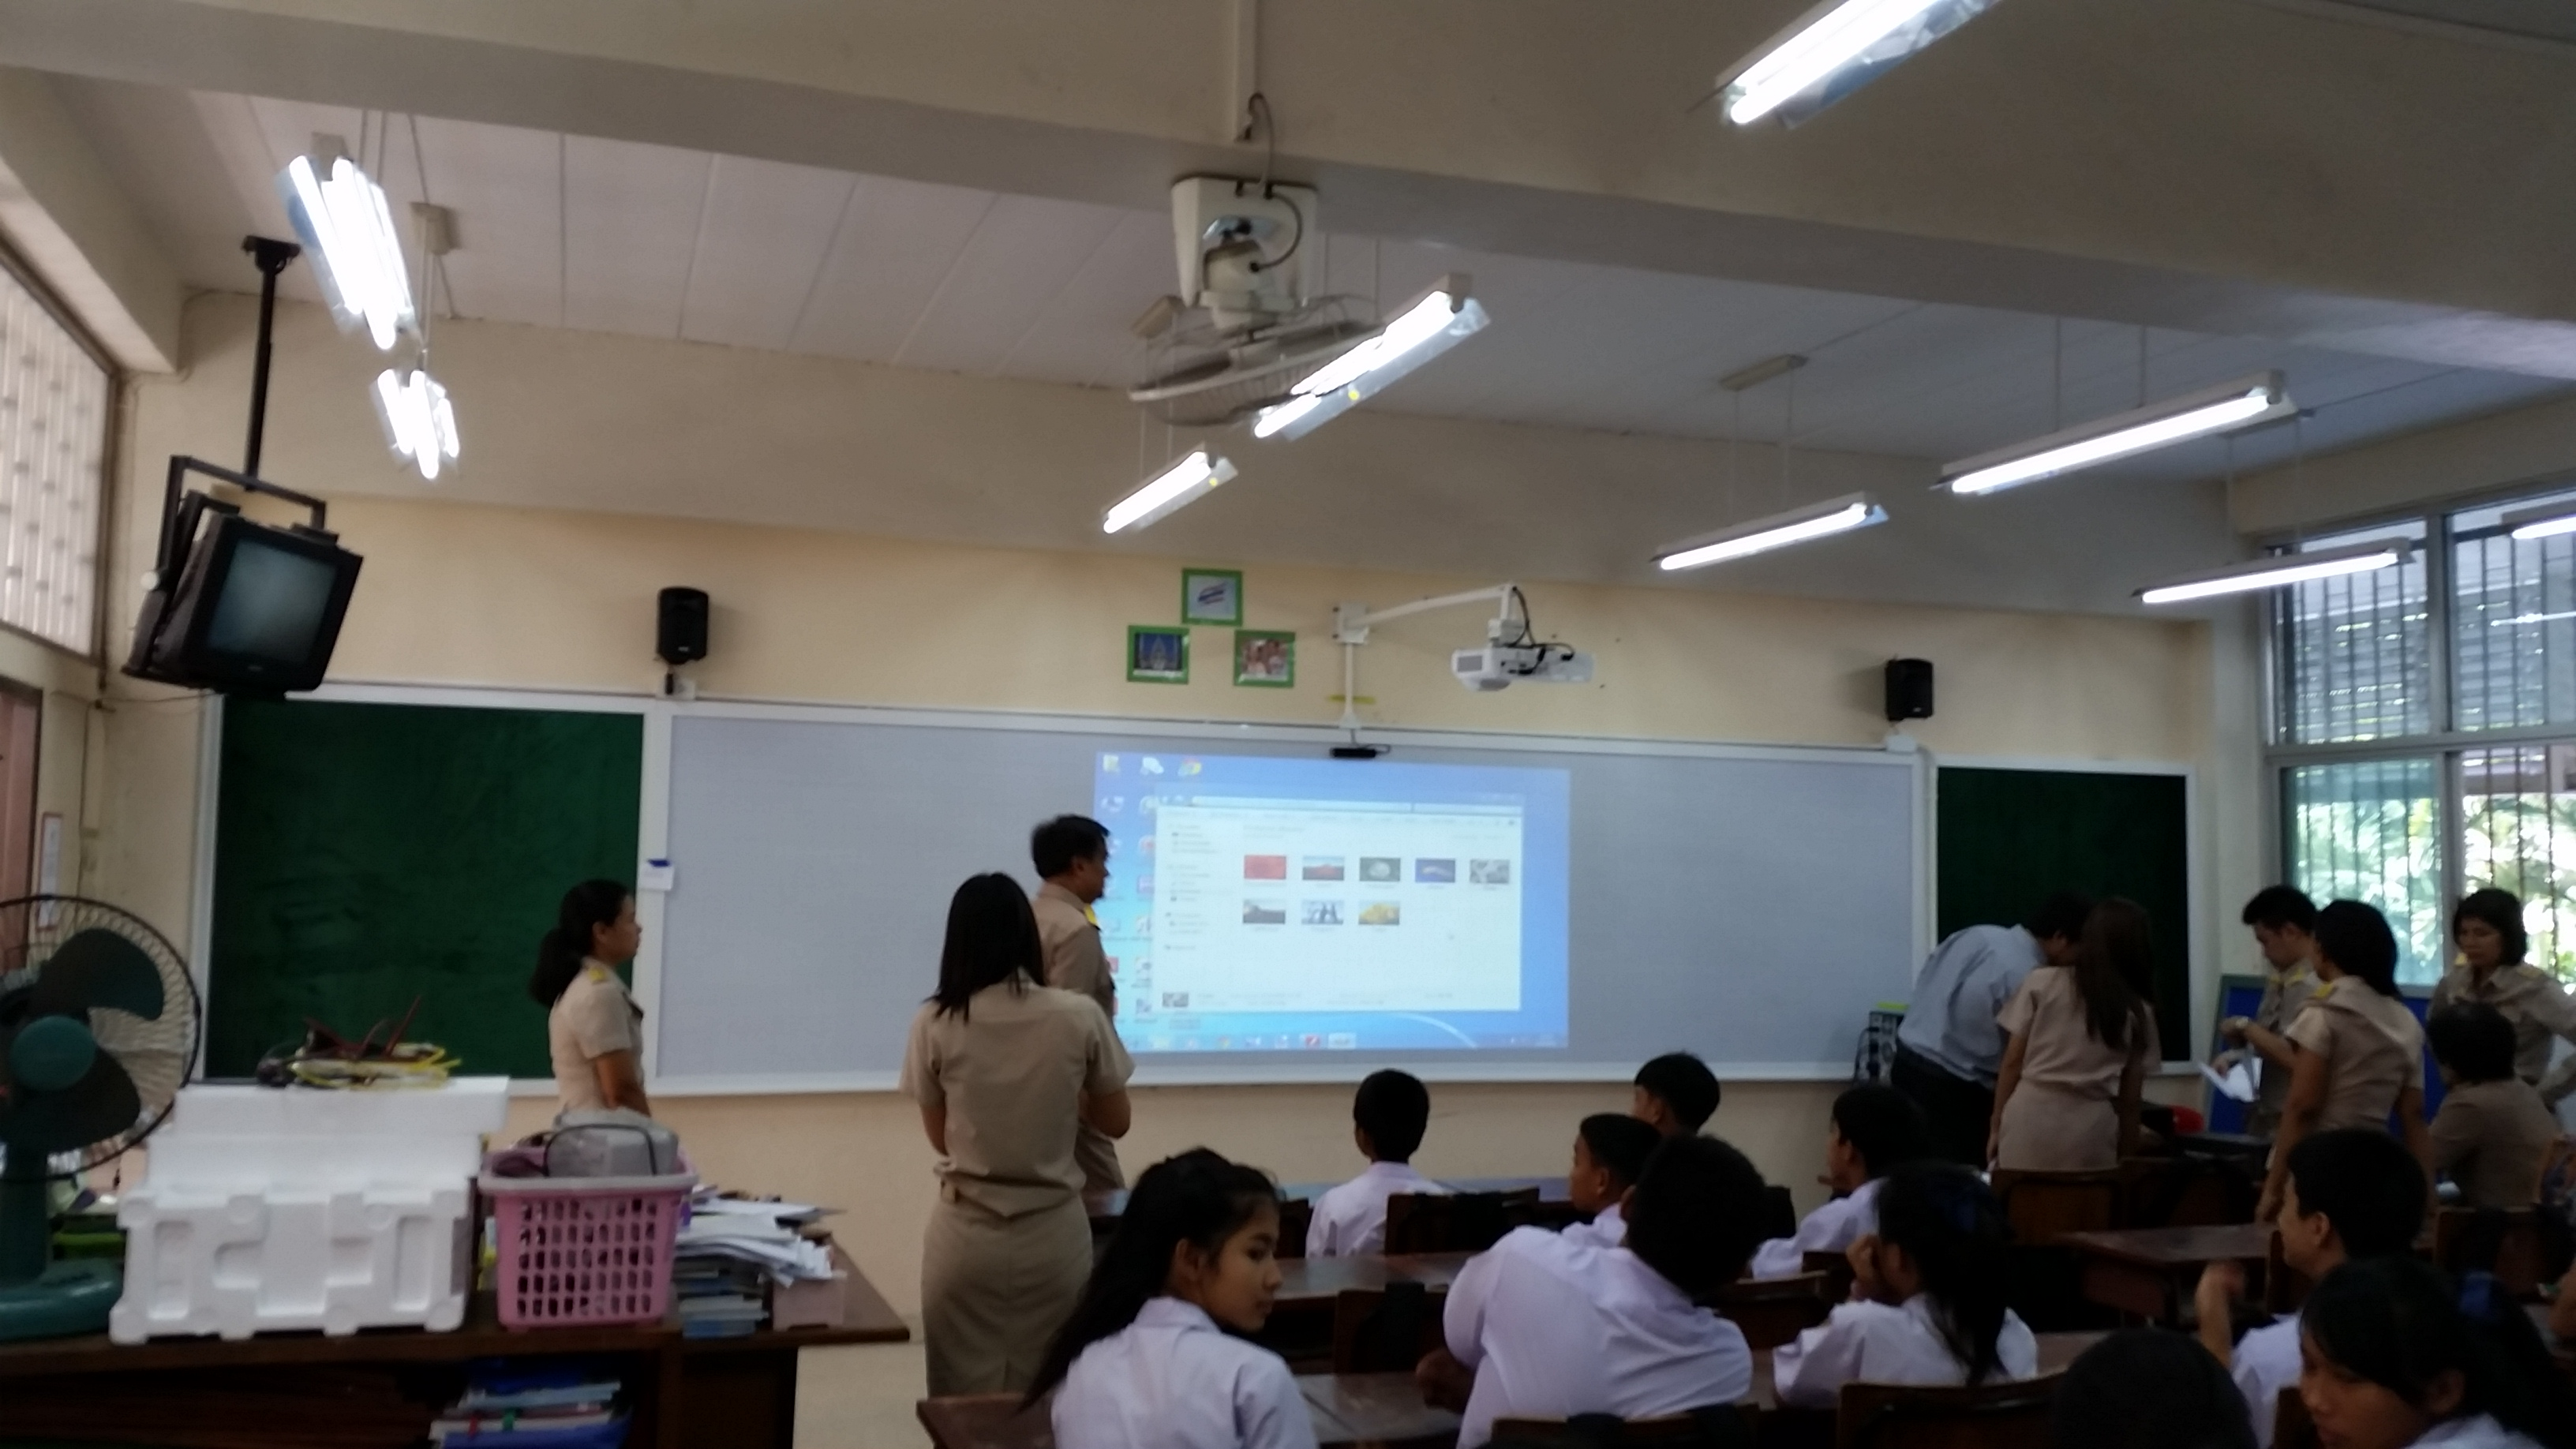 Vinger touch goedkope smart board interactive whiteboard, geen projector interactieve whiteboard